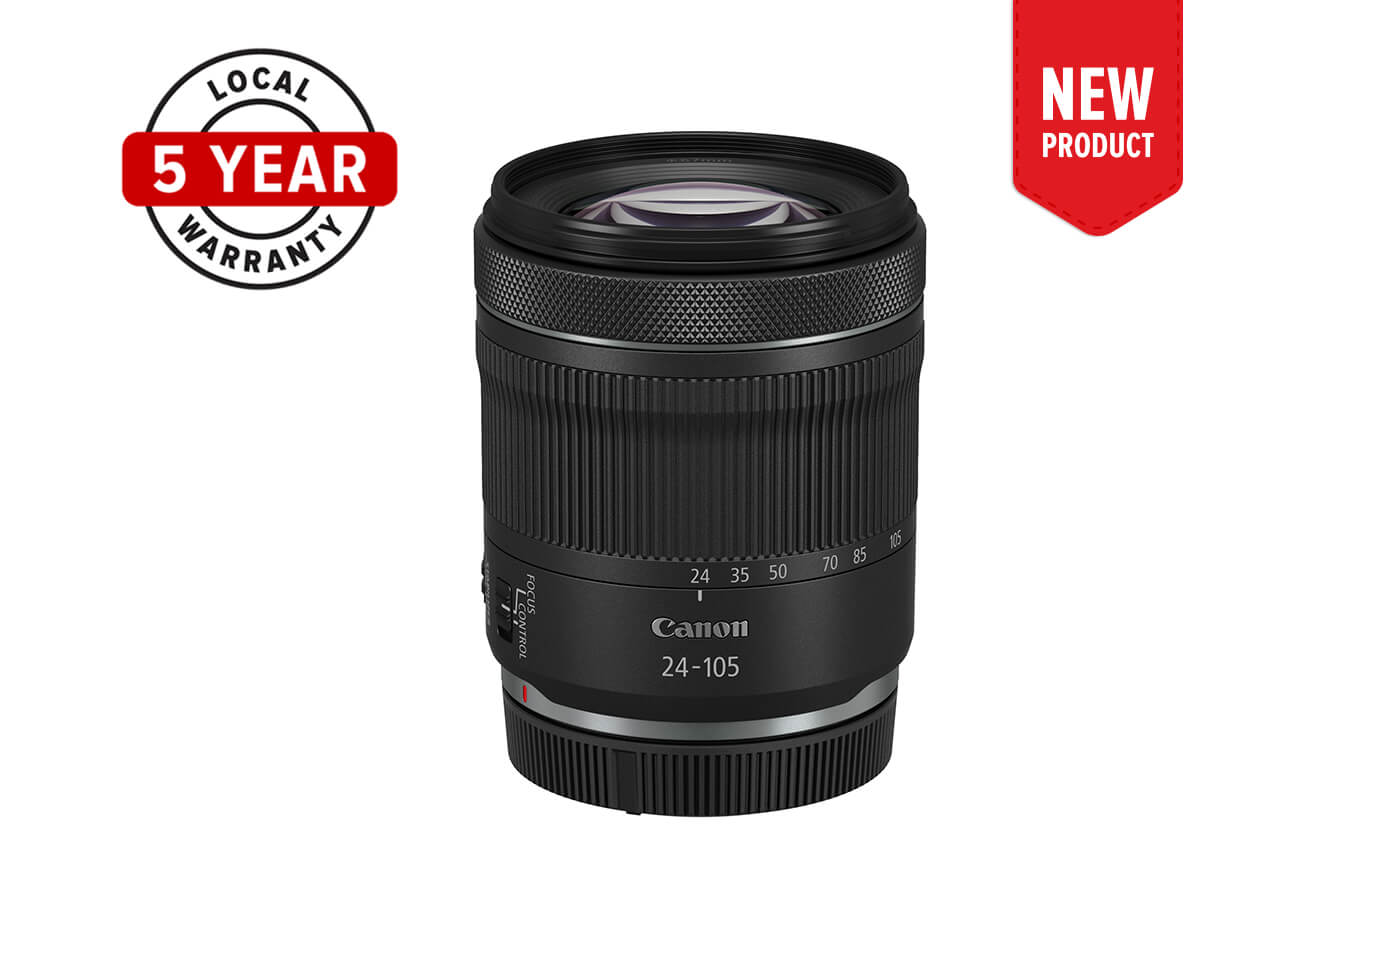 Product image of RF 24-105mm f/4-7.1 IS STM